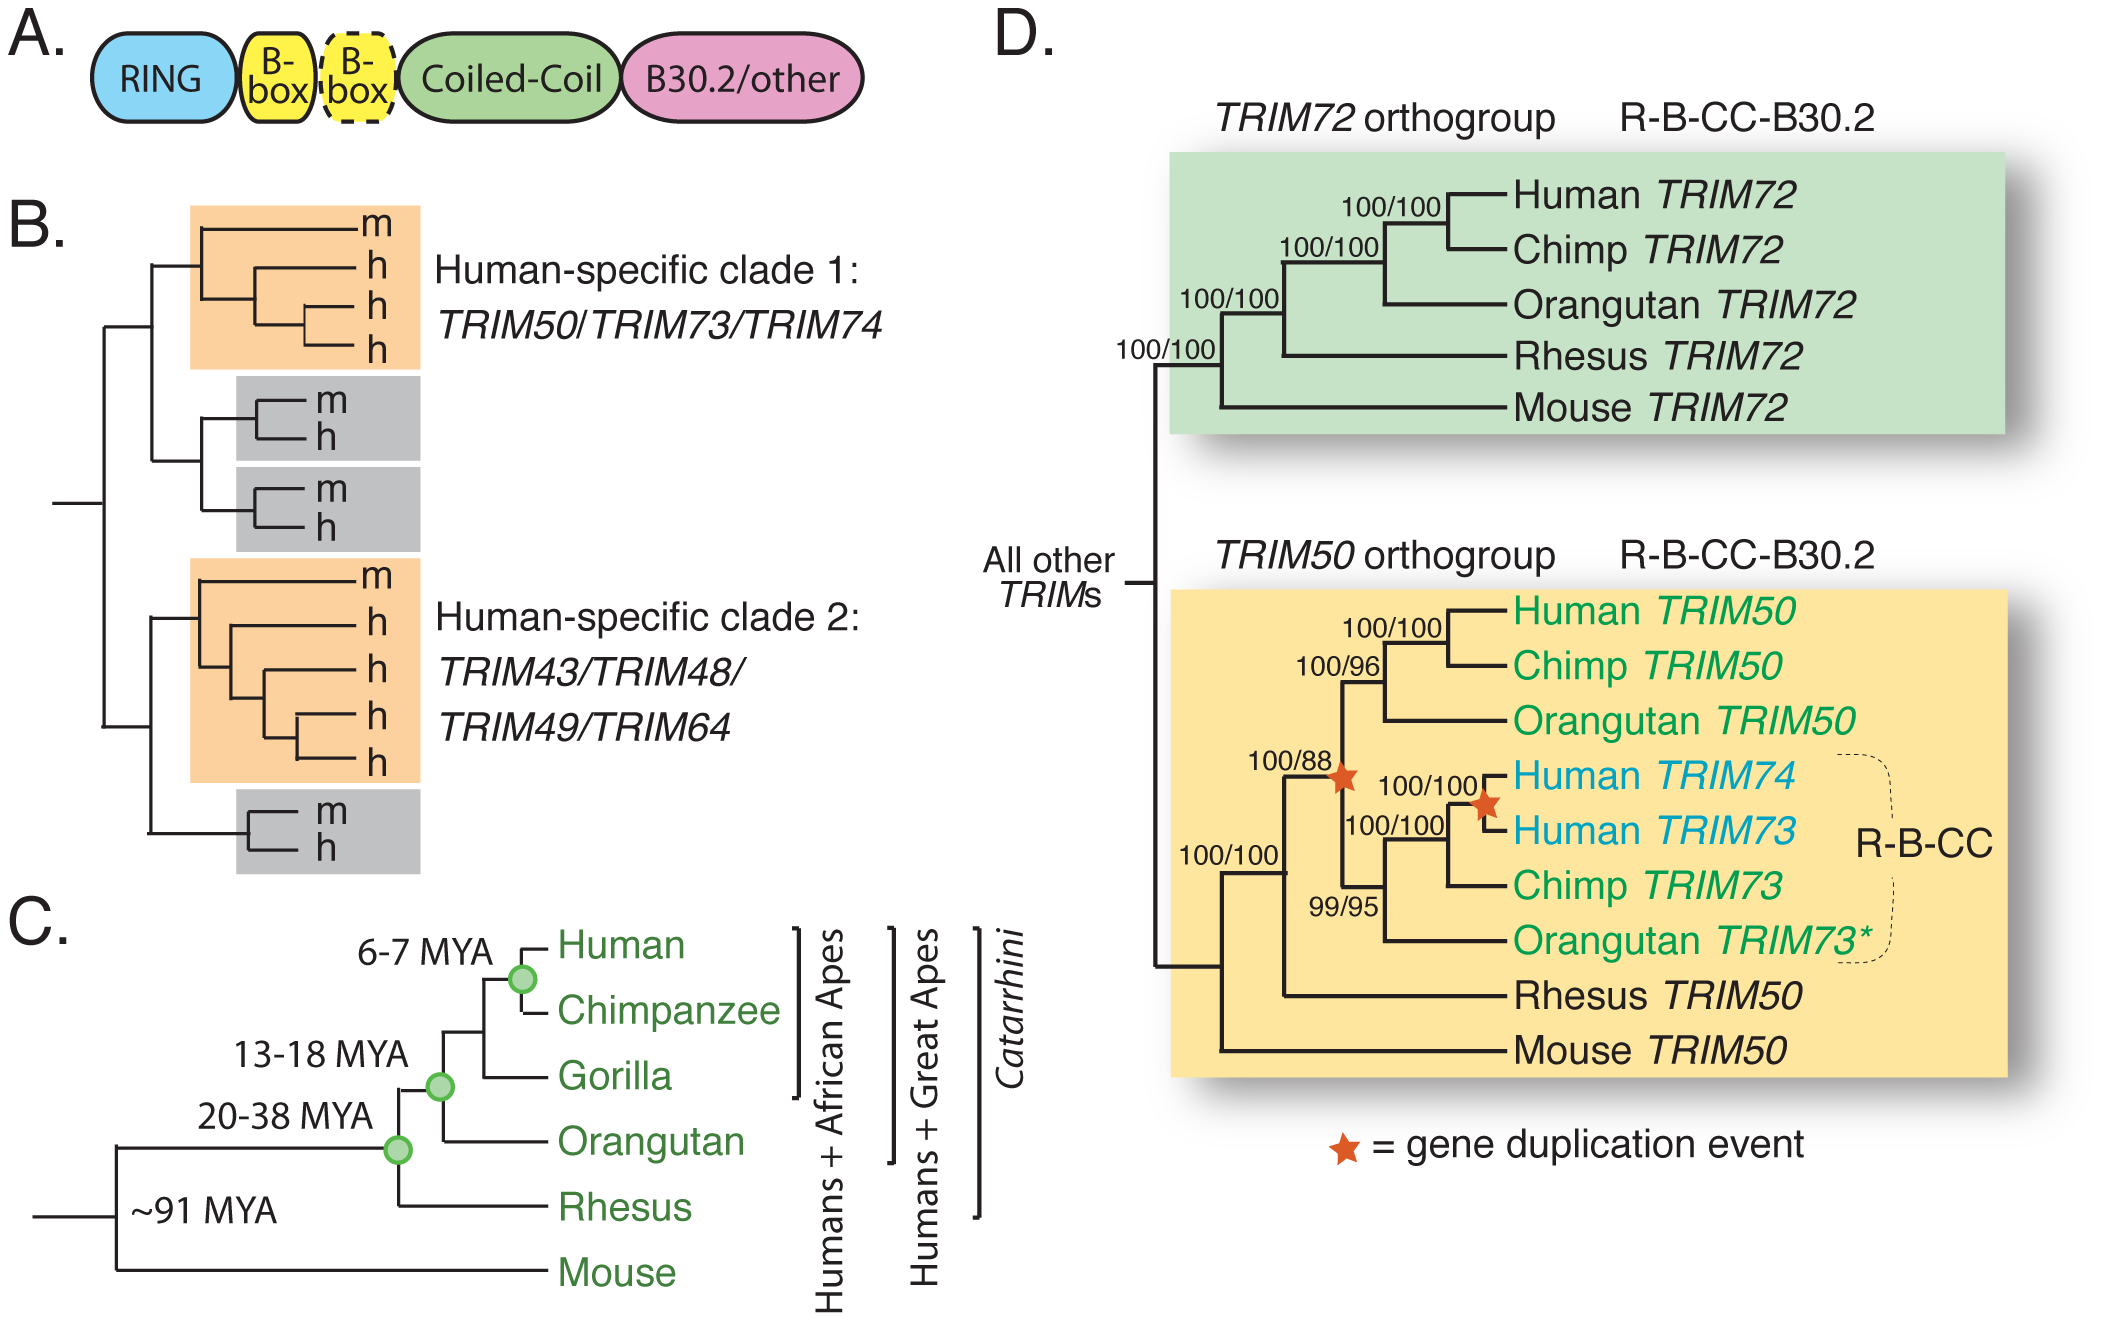 <i>TRIM73</i> and <i>TRIM74</i> arose in our recent primate ancestors.